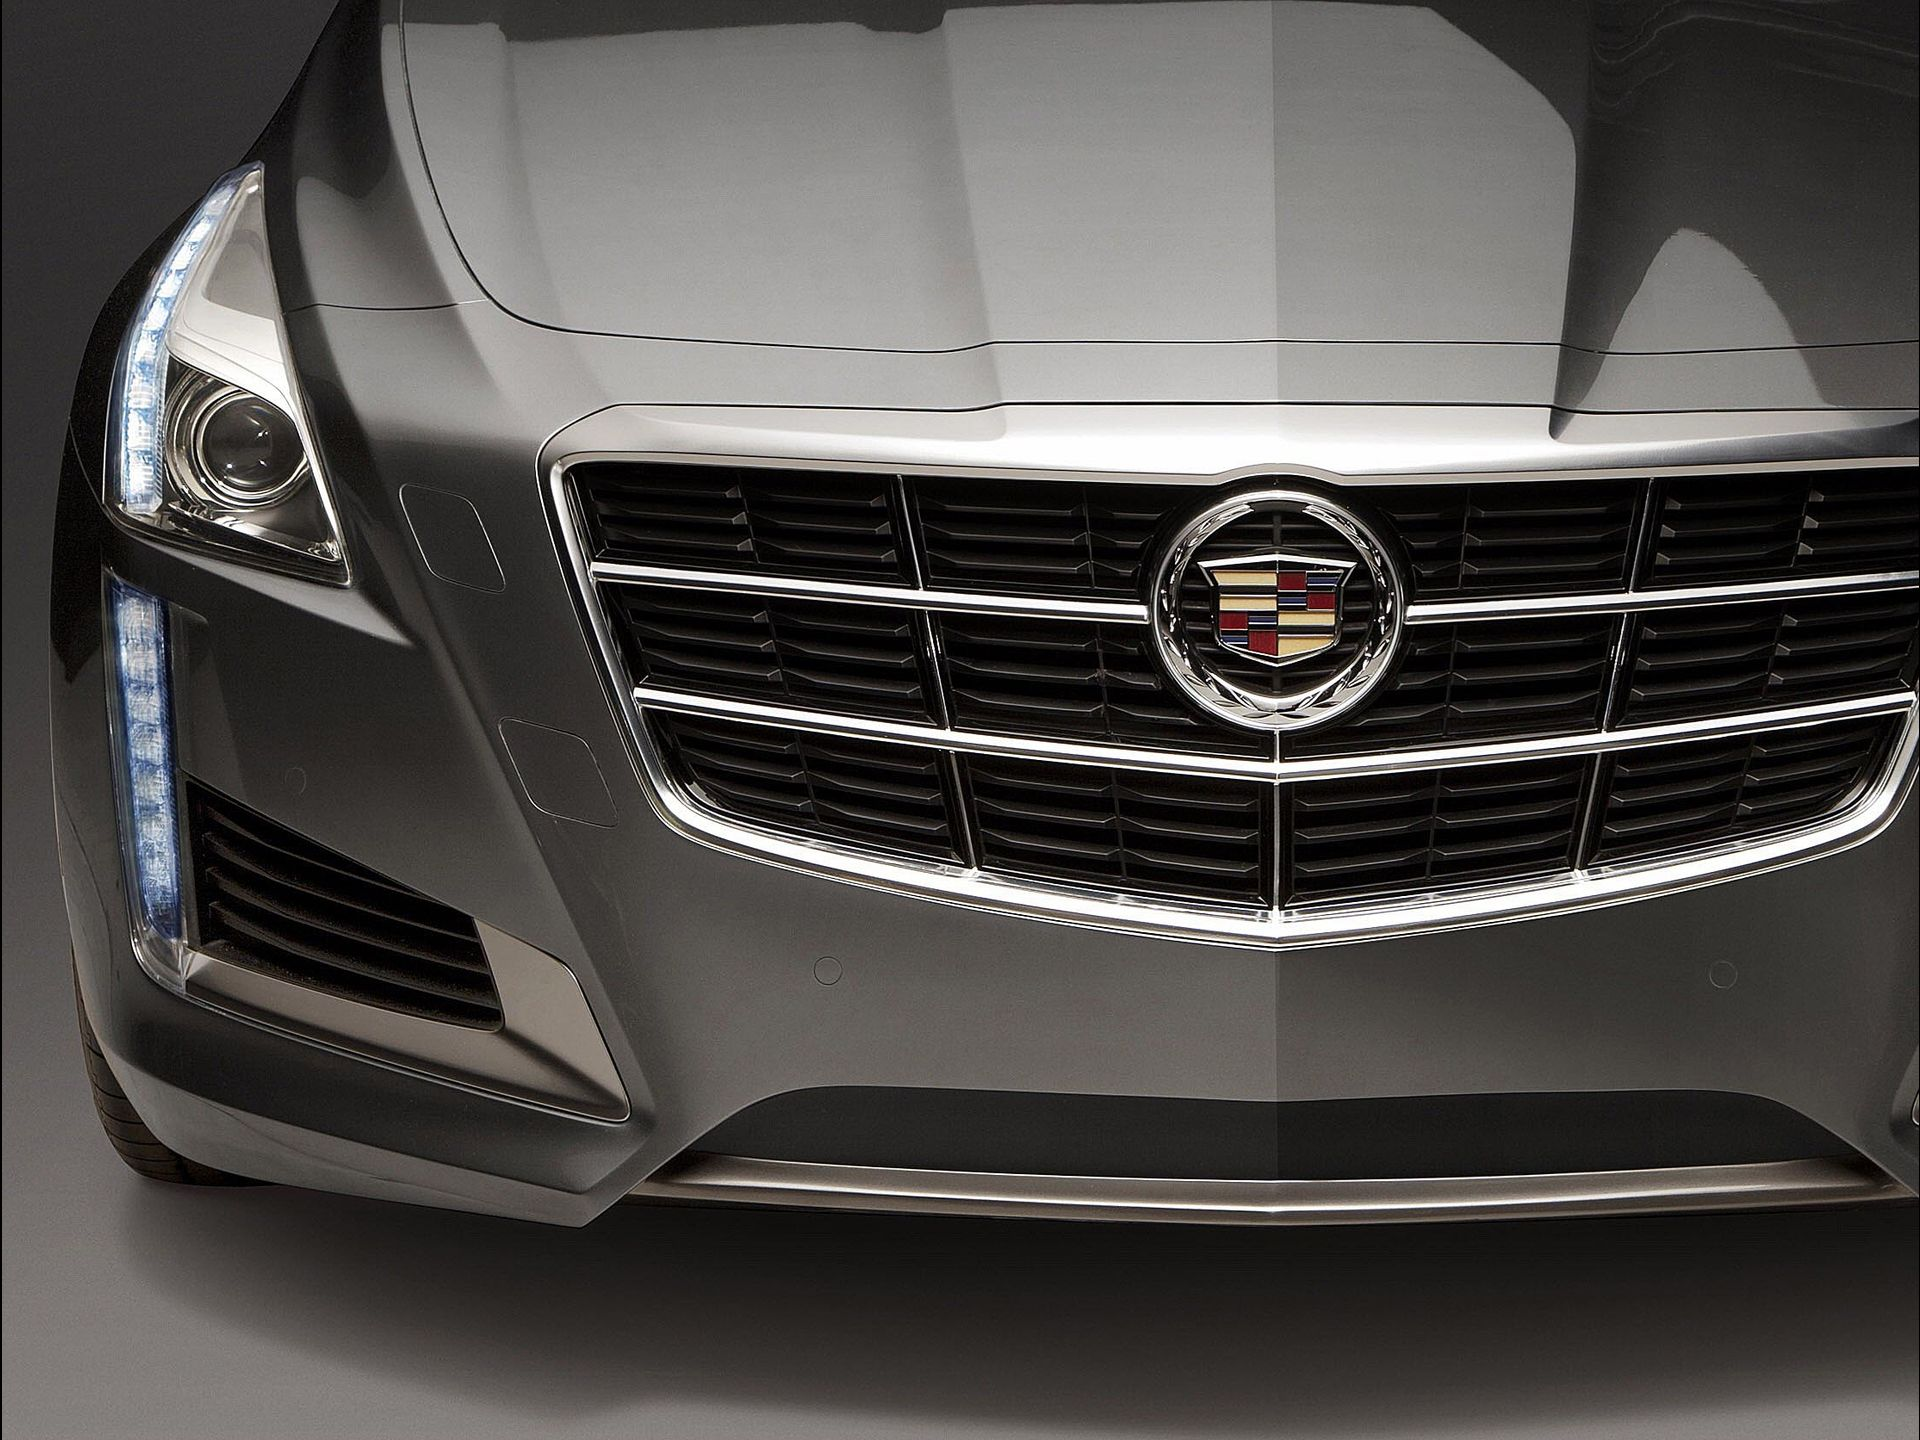 2014 Cadillac Cts Discussion Thread Chevy Ss Forum White Cts6 Pictures